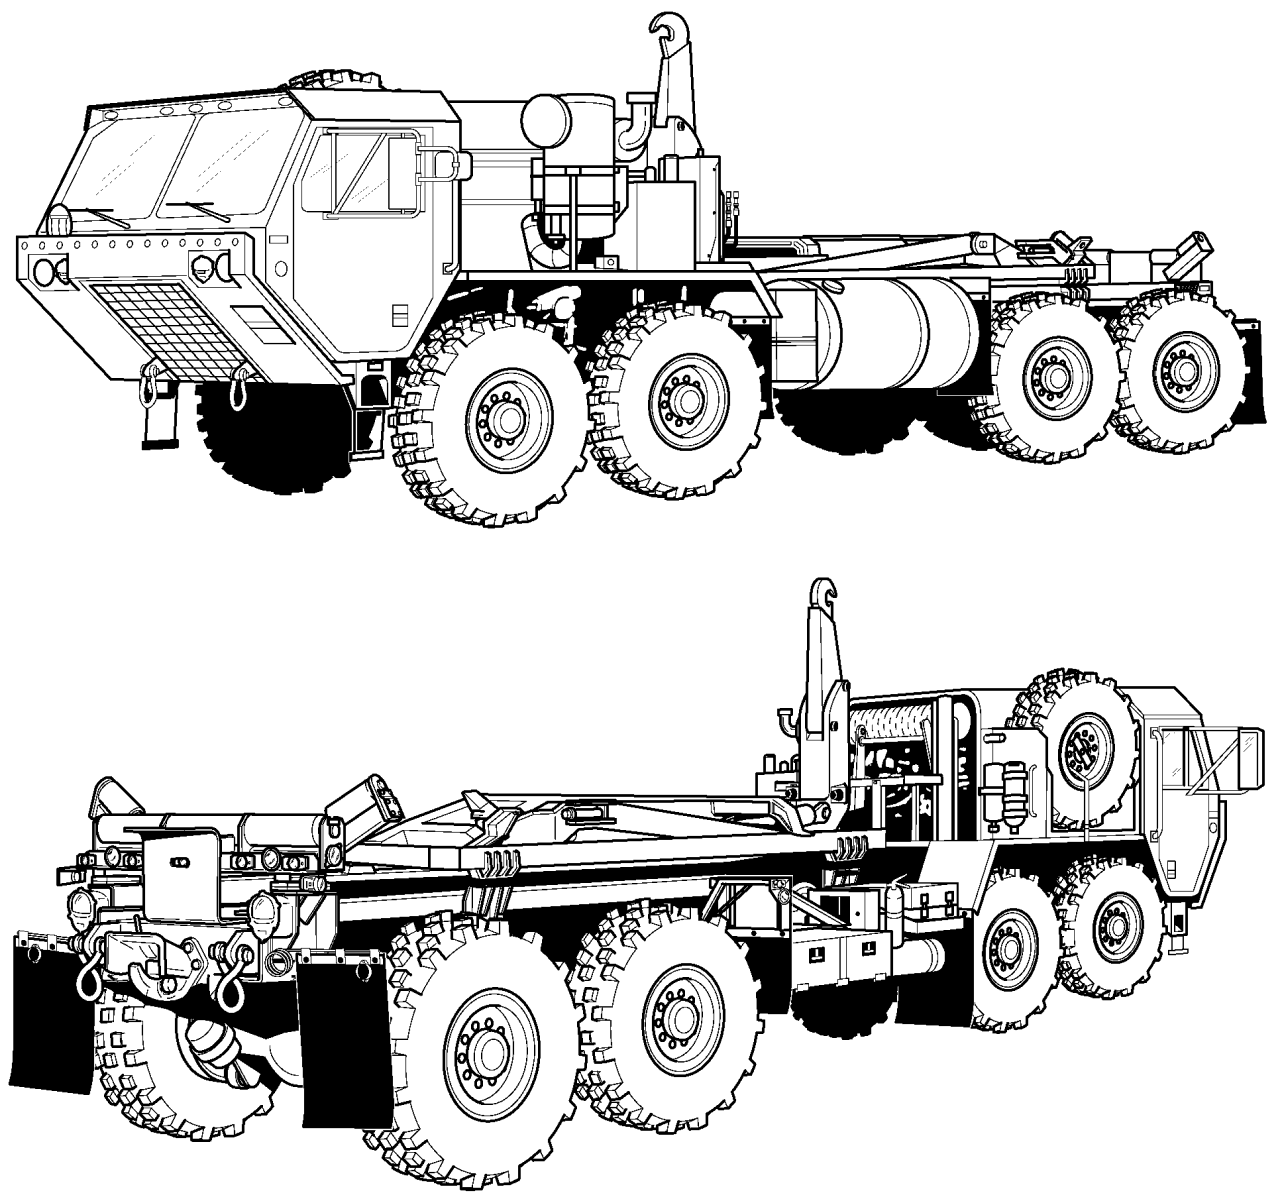 M977 Heavy Expanded Mobility Tactical Truck Hemtt